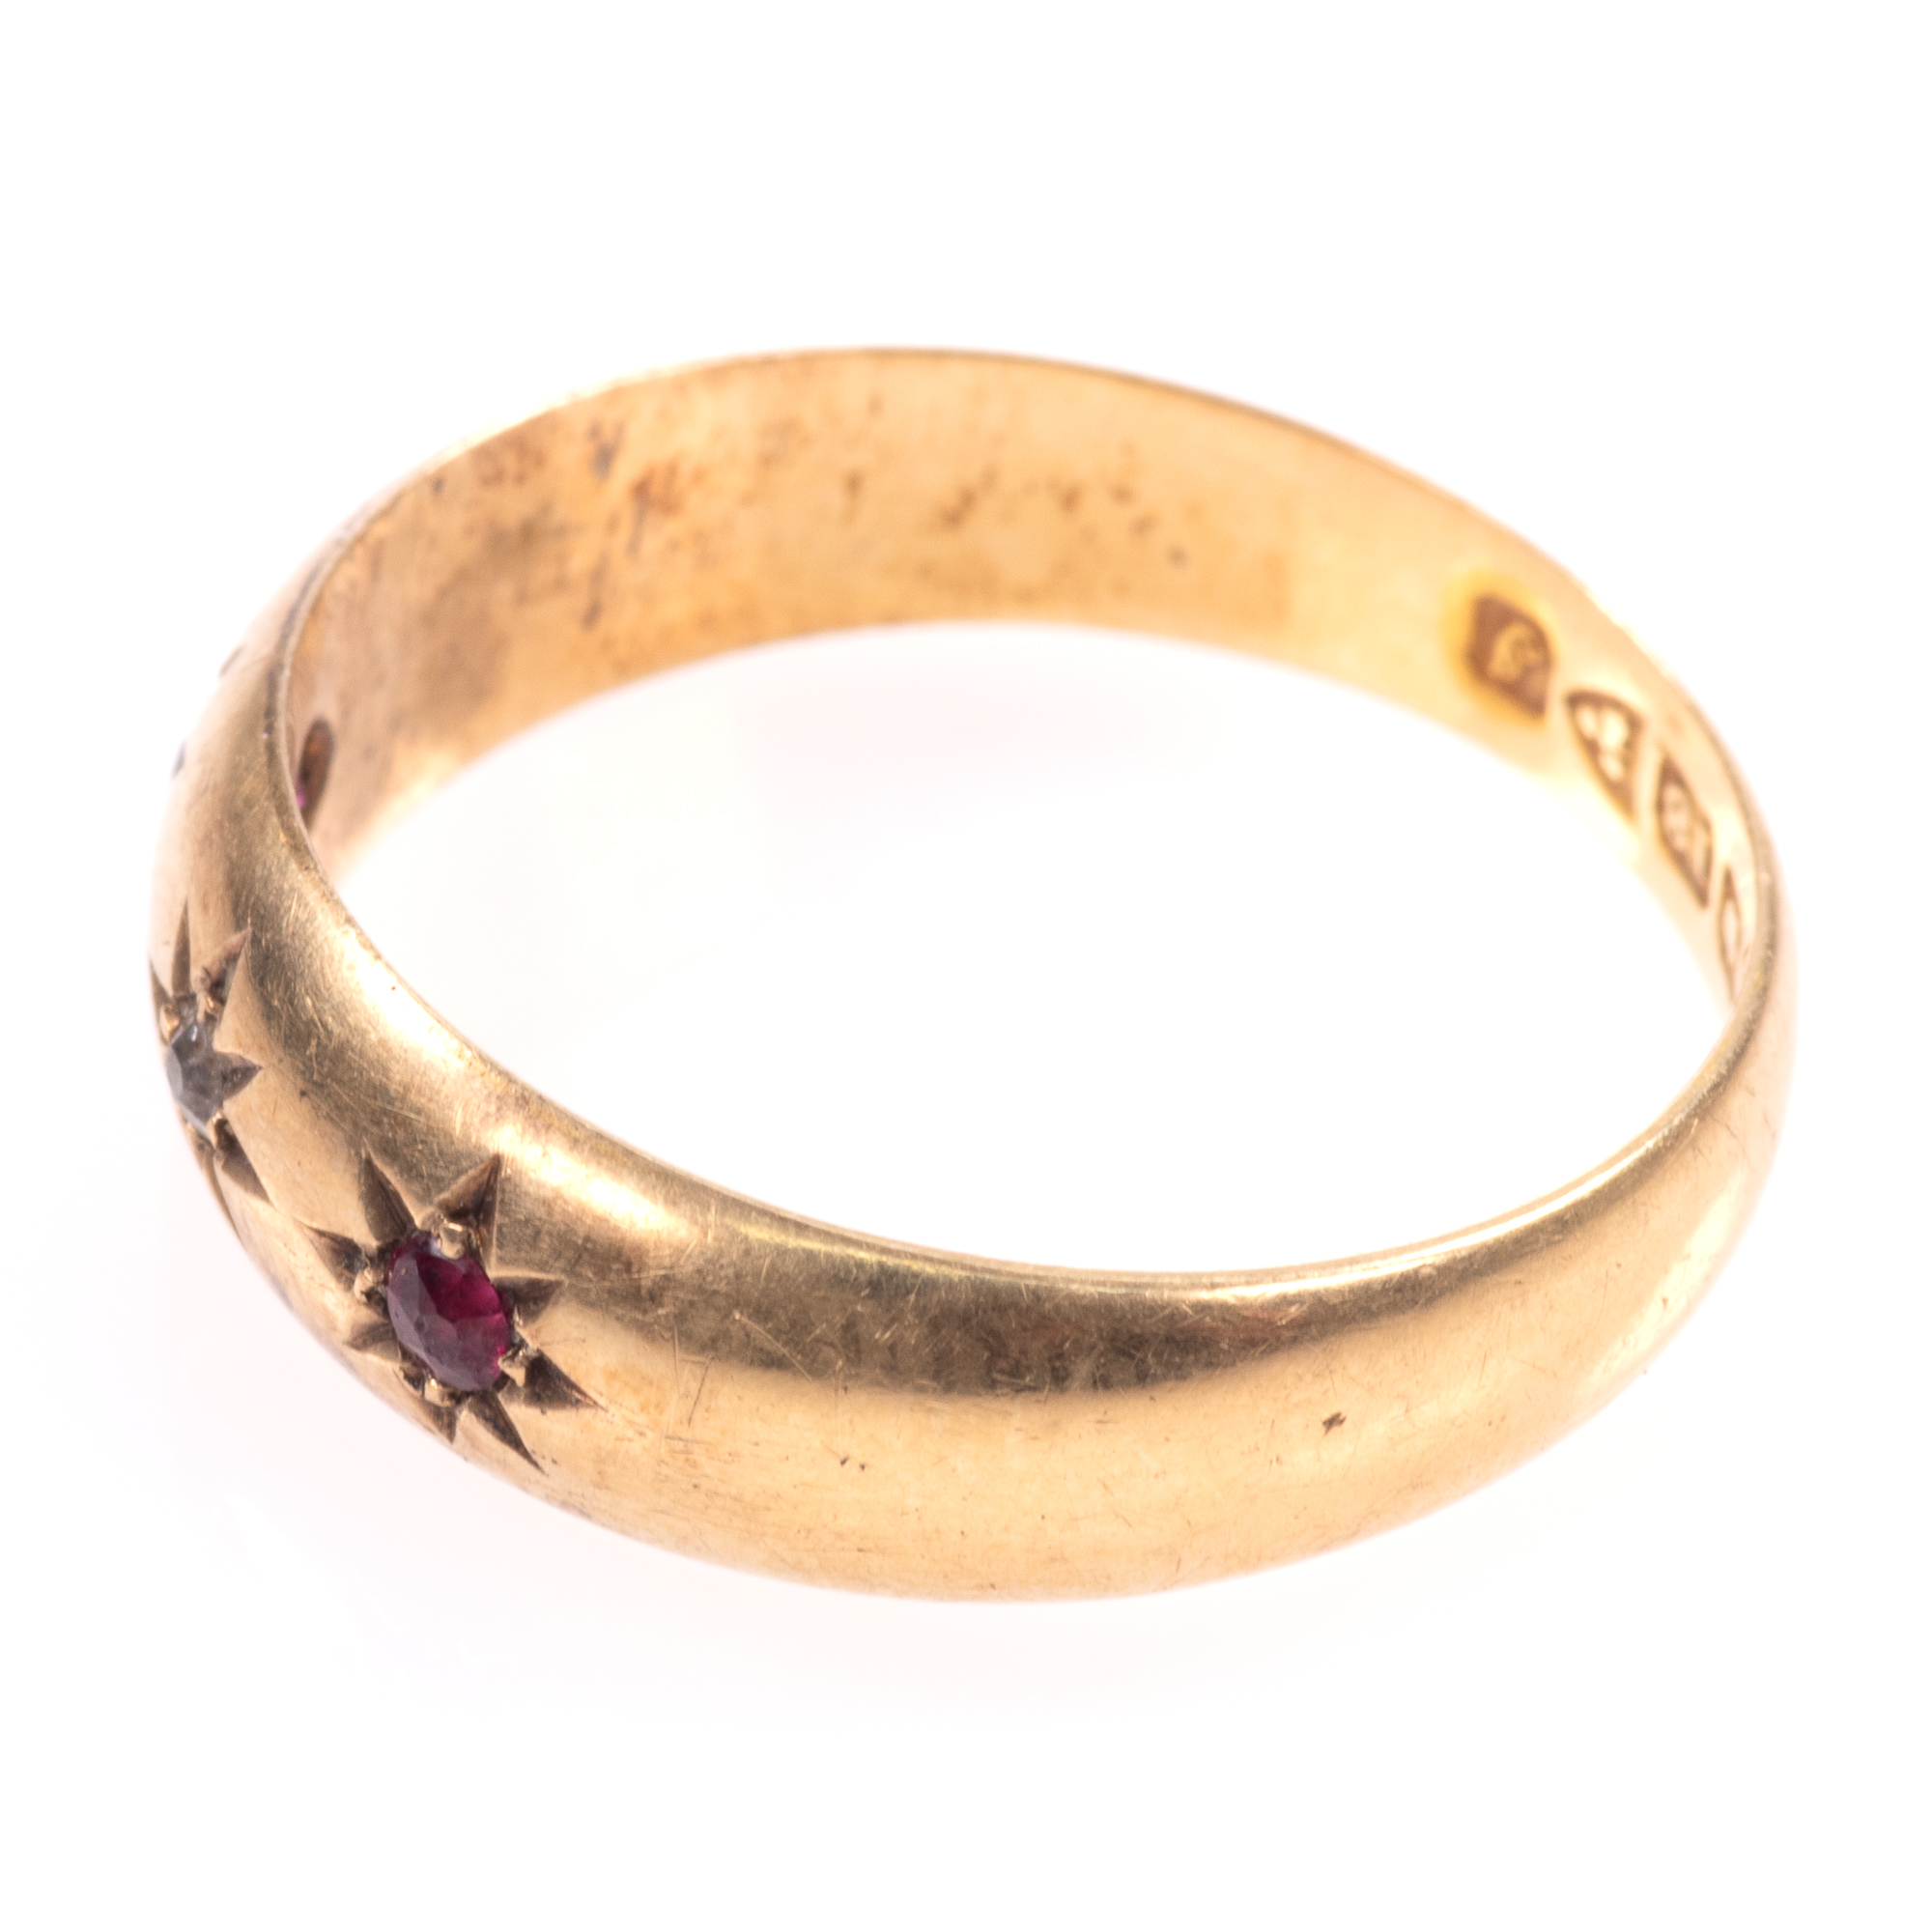 18ct Gold Edwardian Ruby & Diamond Ring Chester 1909 - Image 5 of 8